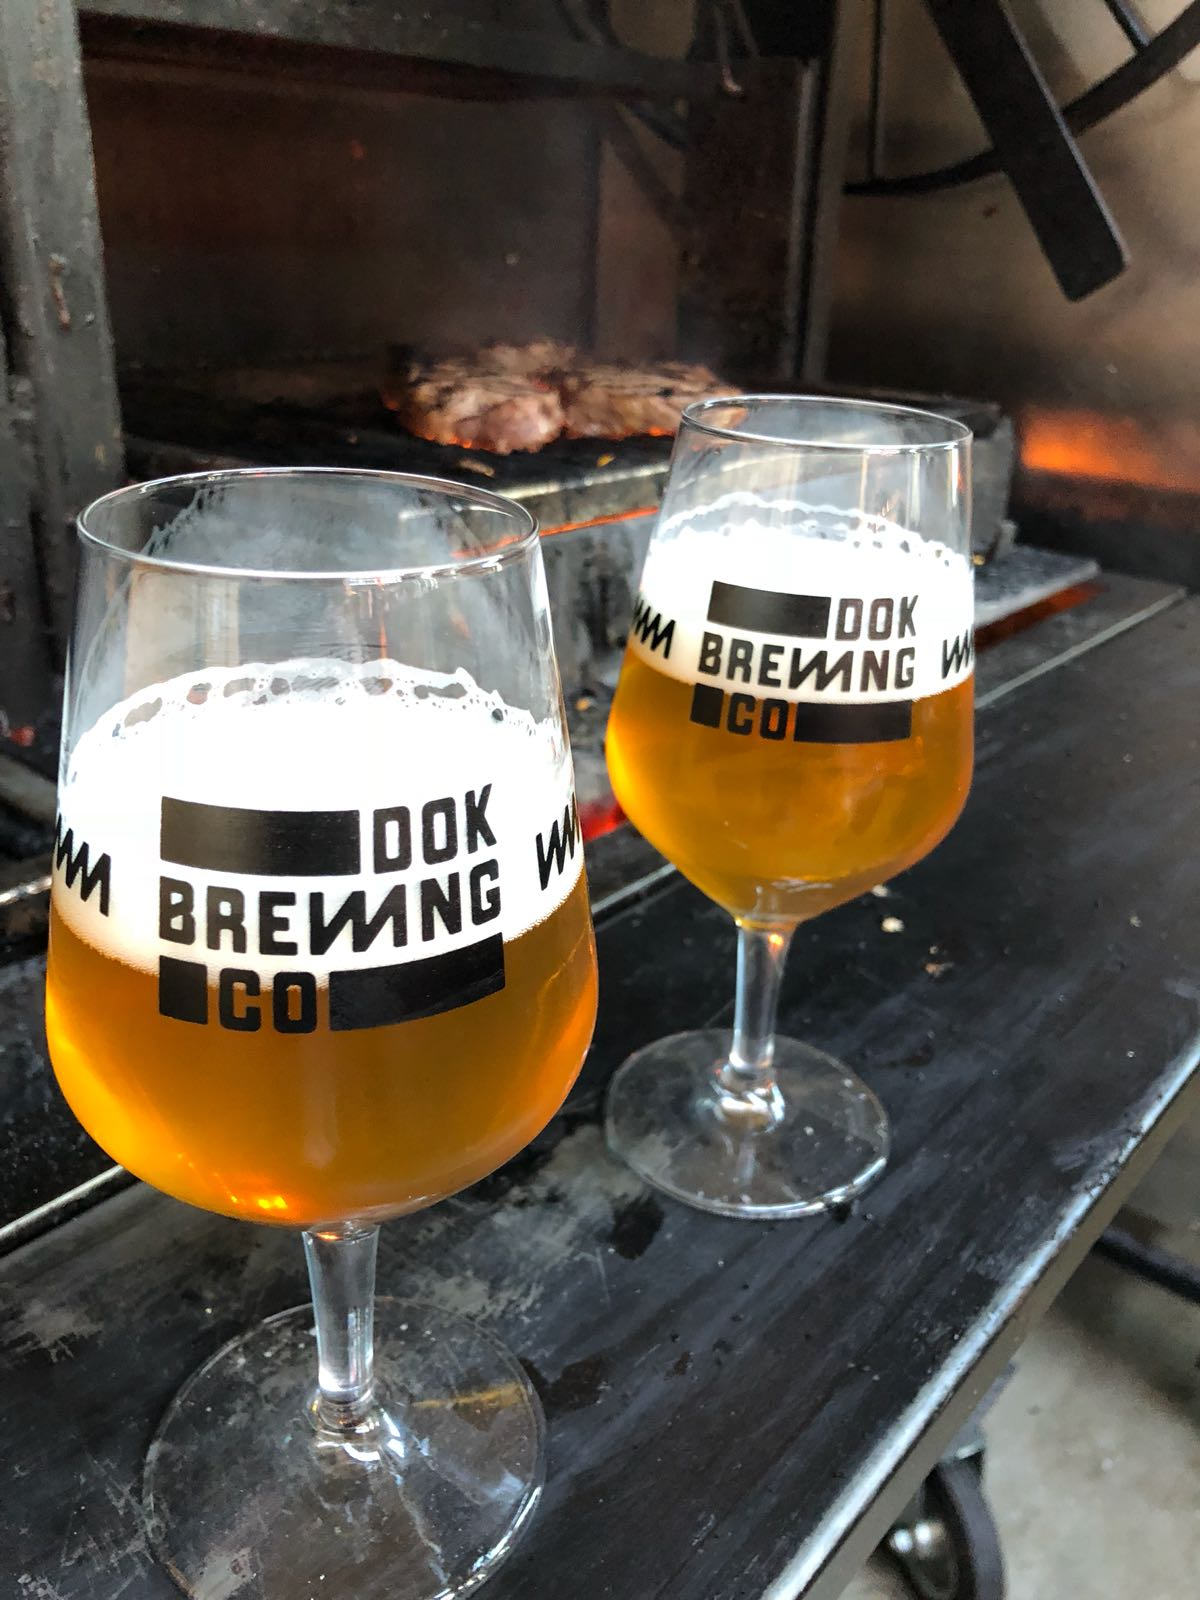 https://usercontent.one/wp/www.dokbrewingcompany.be/wp-content/uploads/2018/07/Dok-brewing-company-glassware-1.jpg?media=1634140415